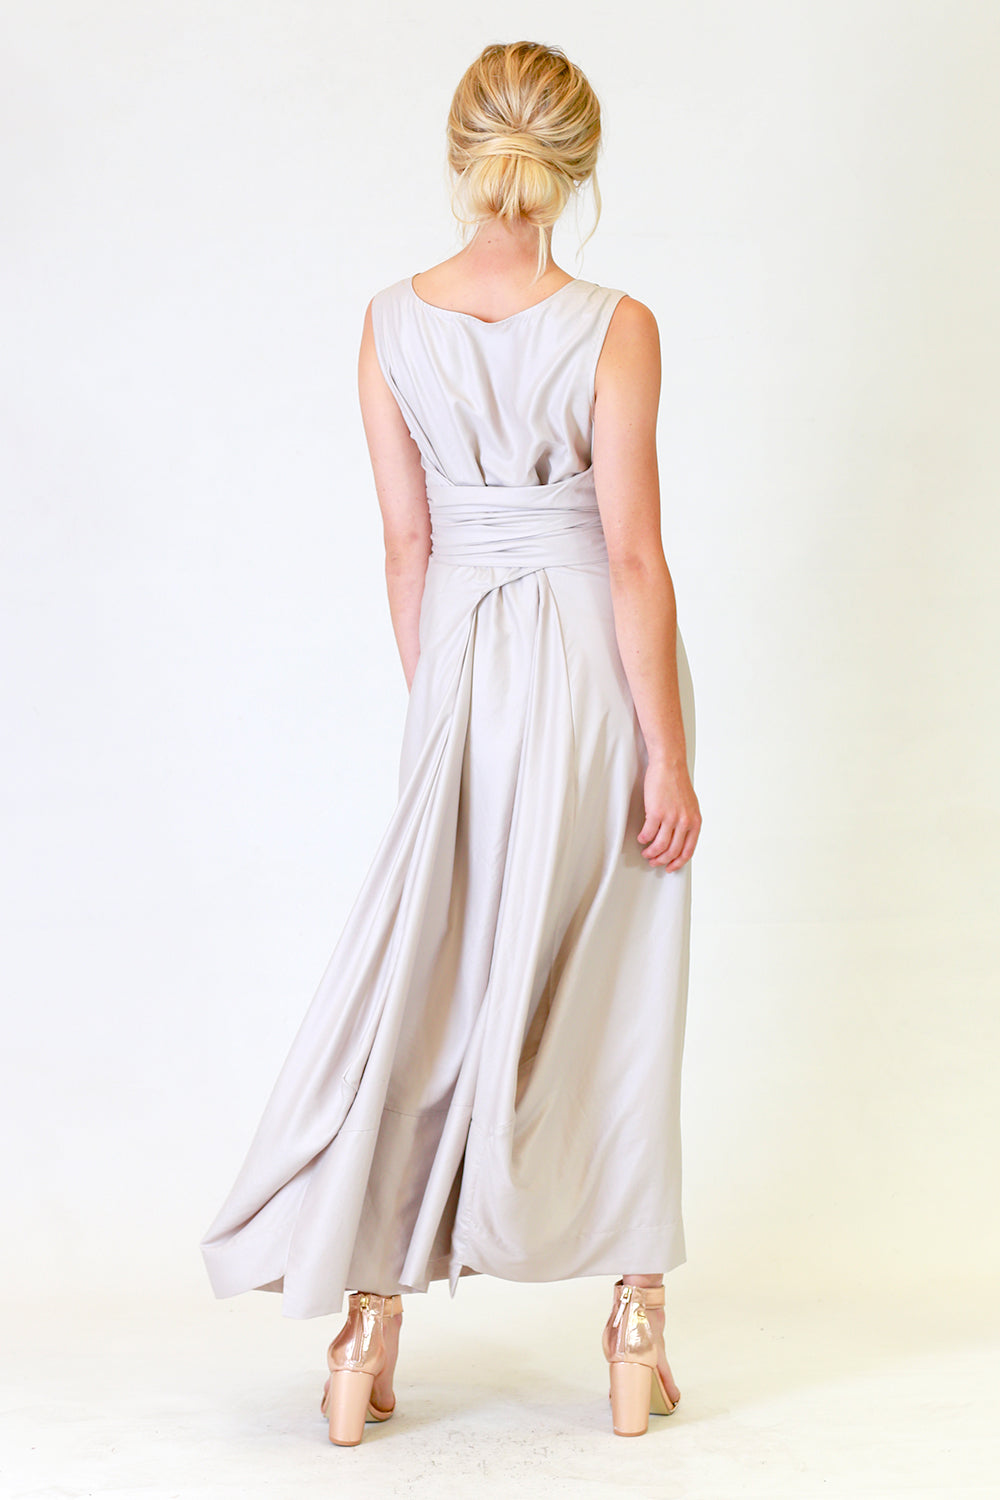 Myra Misty Dress | Green Cream Full Length Dress | Autumn Winter 19 Annah Stretton Fashion NZ